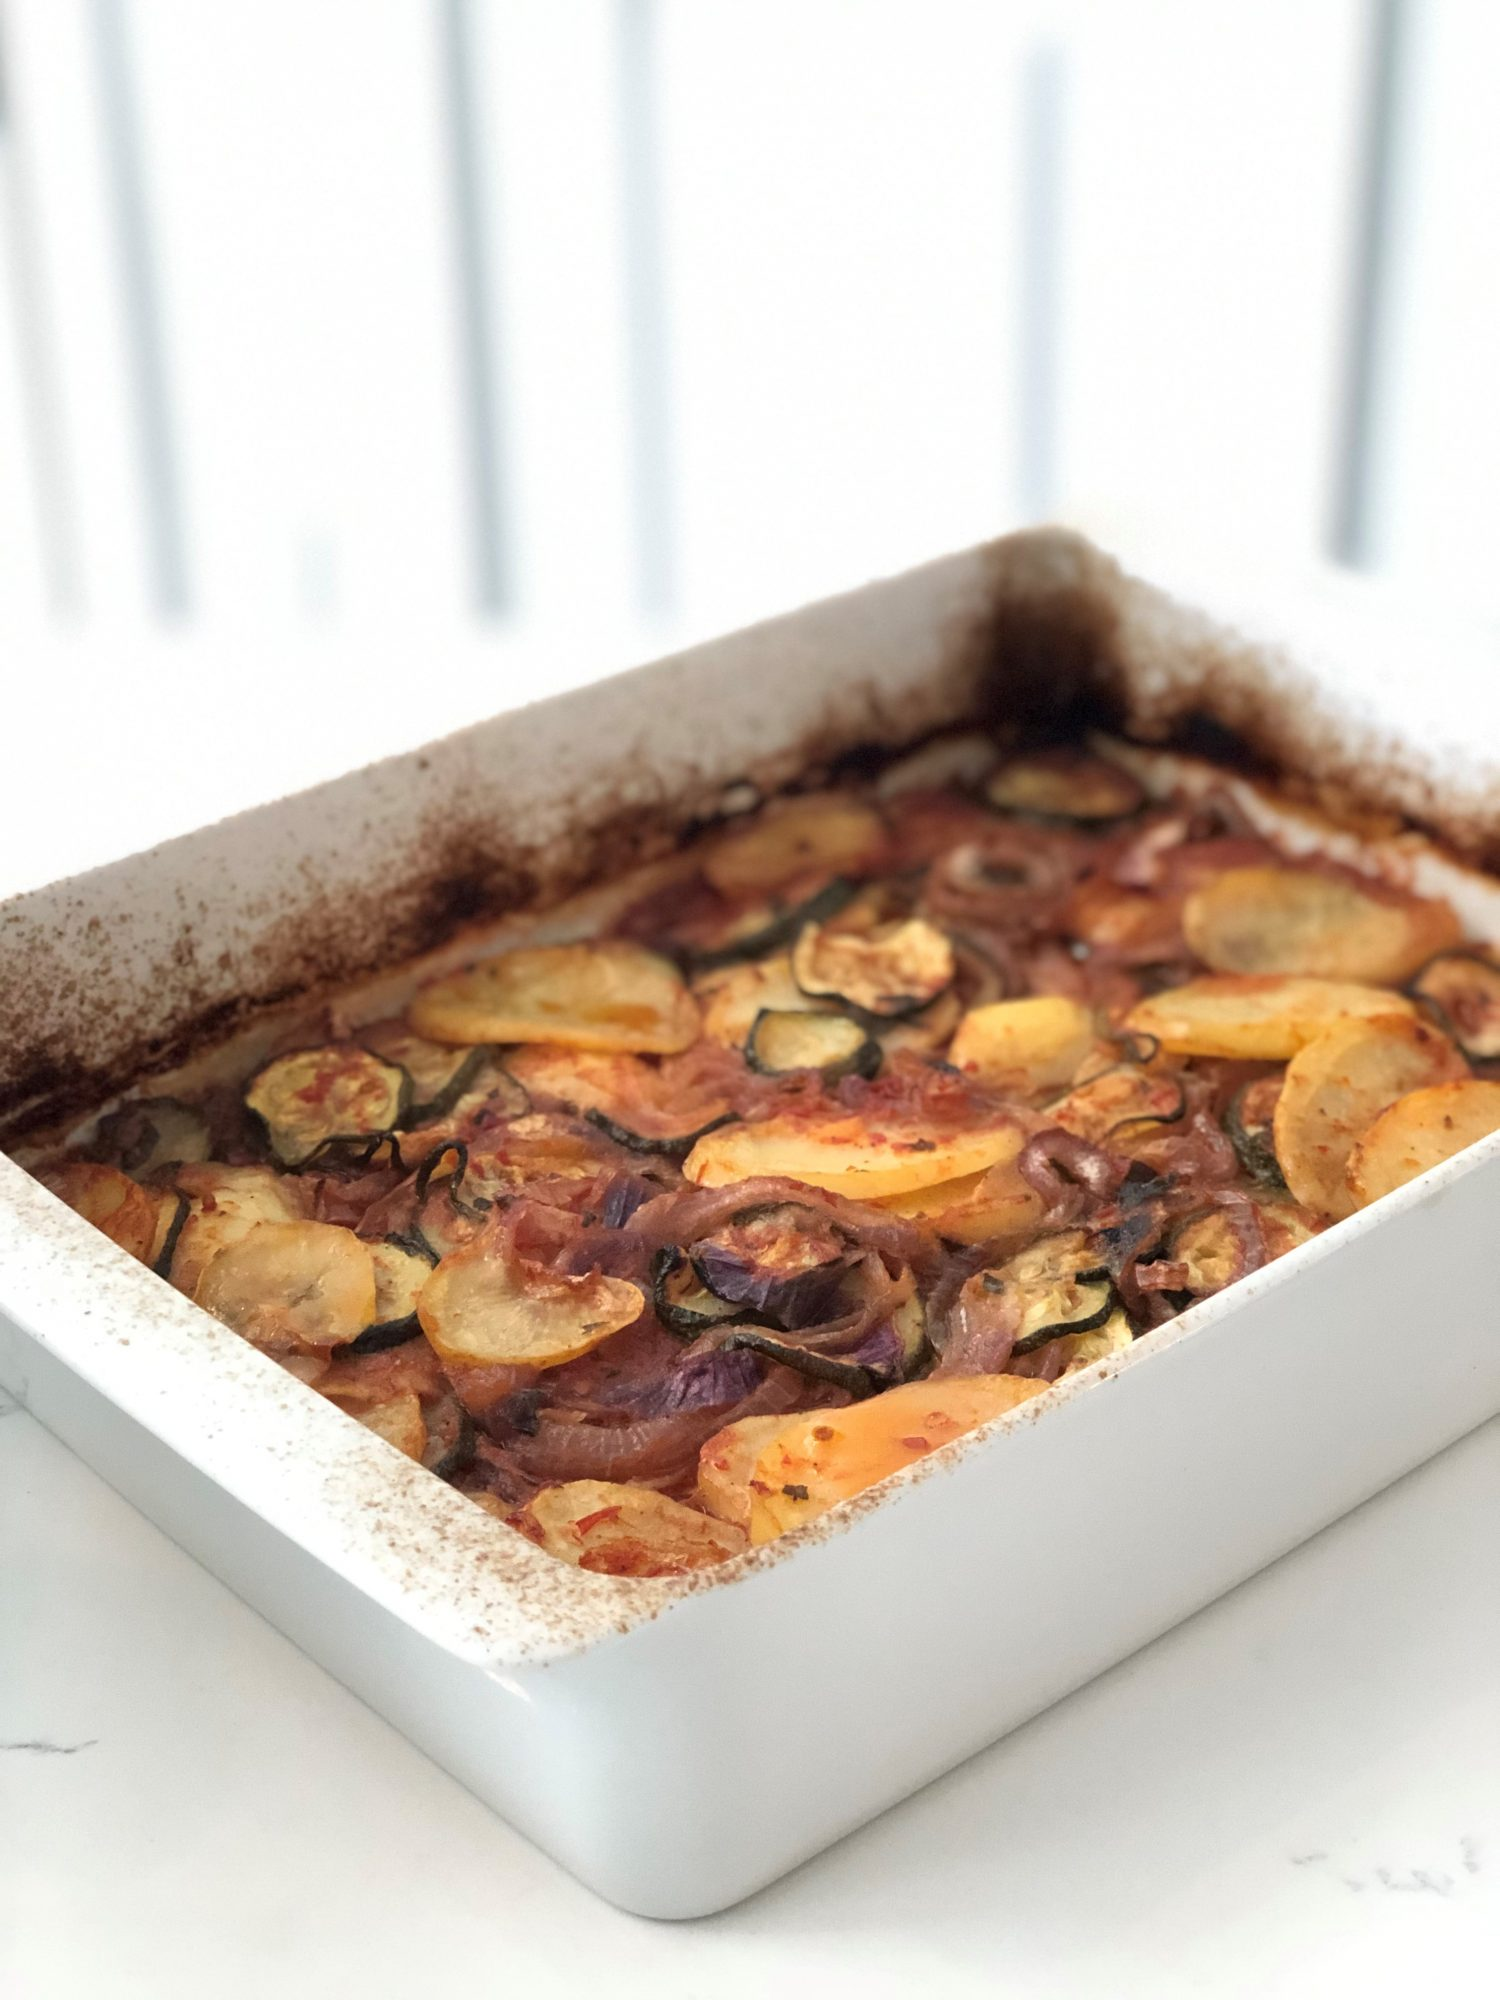 Briam, or baked zucchini and potatoes, is a vegan main course.